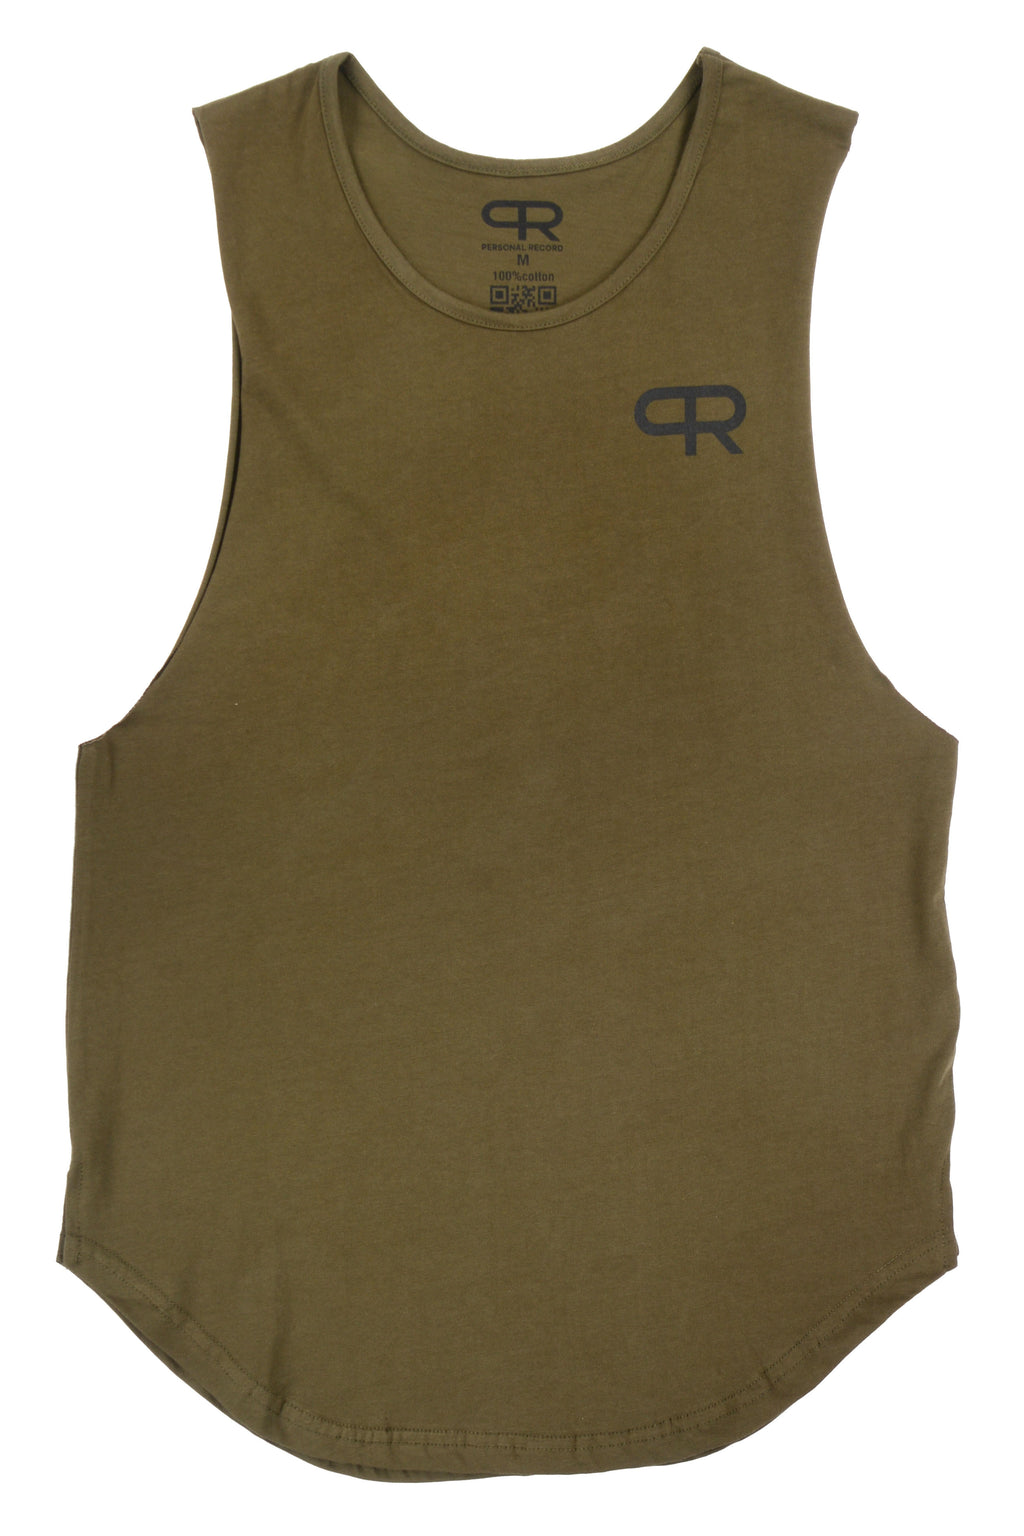 Personal Record Muscle Tank-PR310- Olive